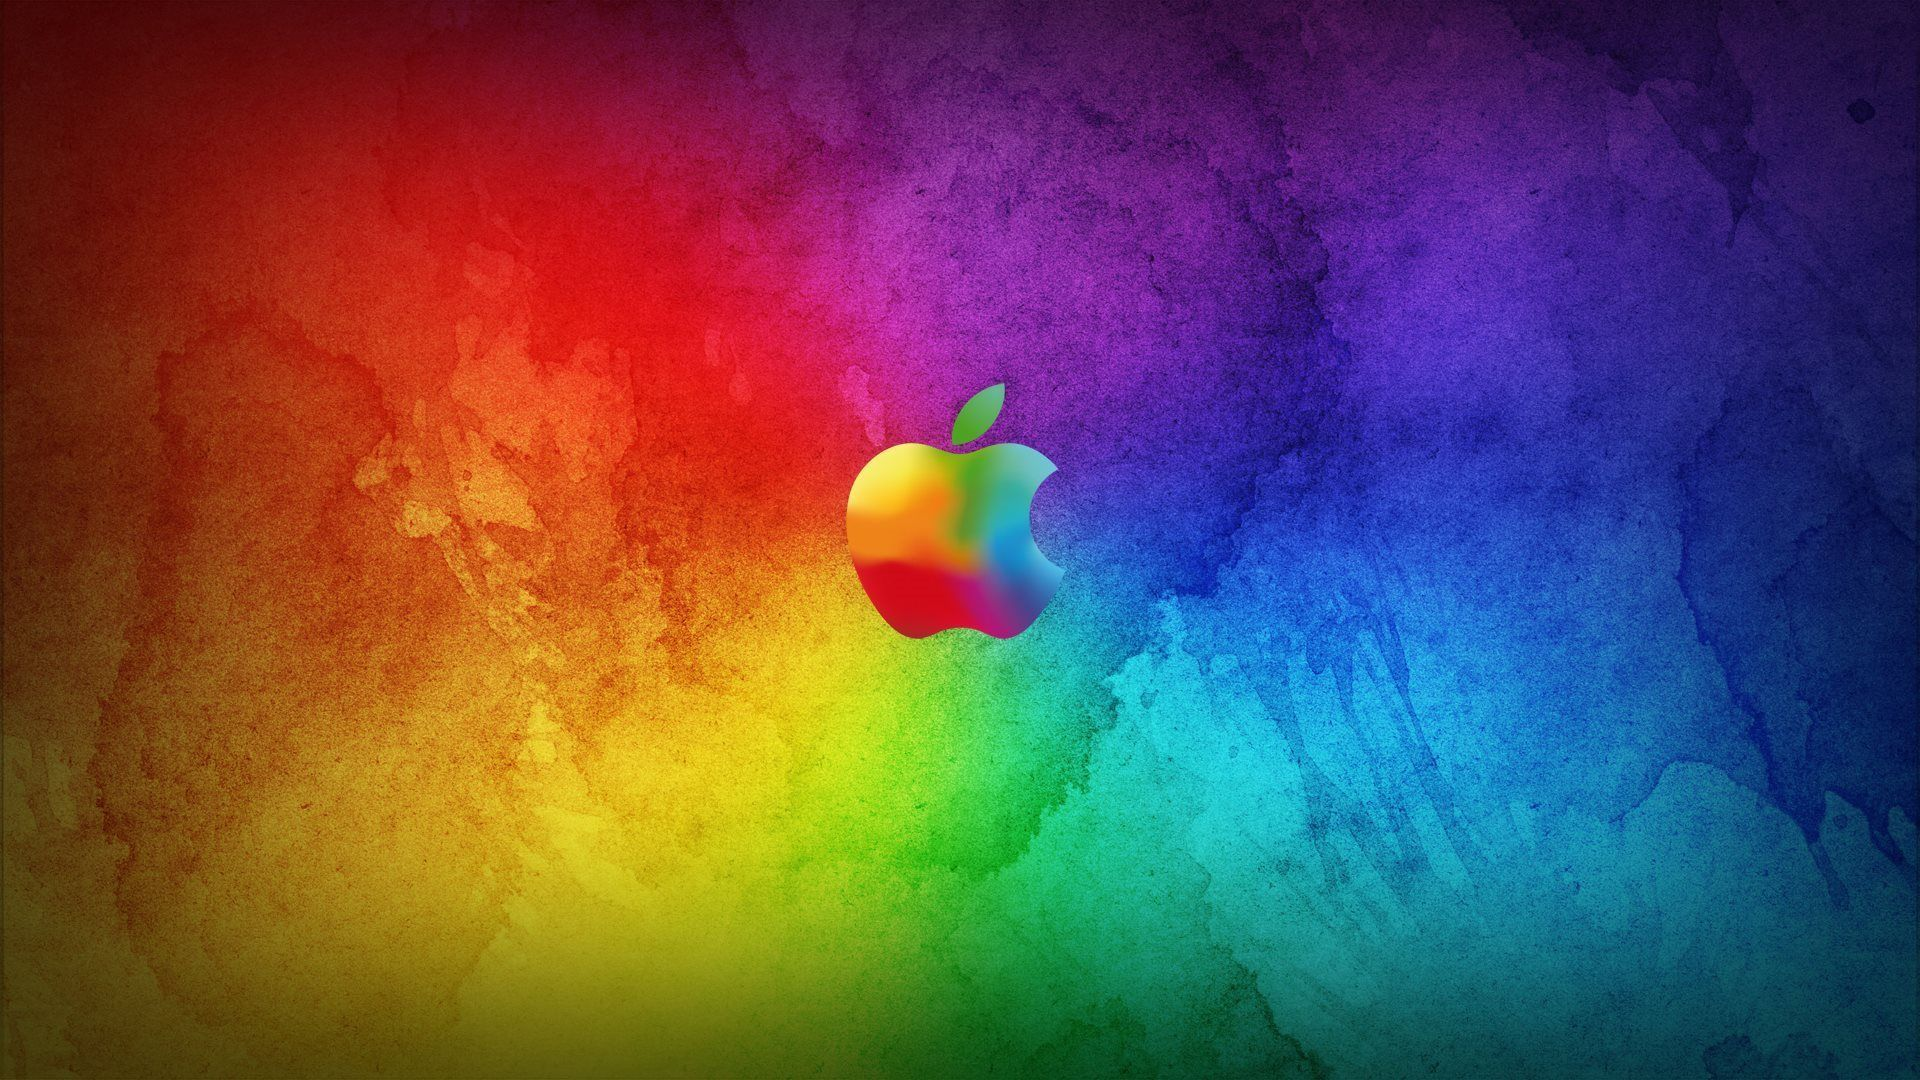 apple desktop wallpaper windows 7 - photo #36